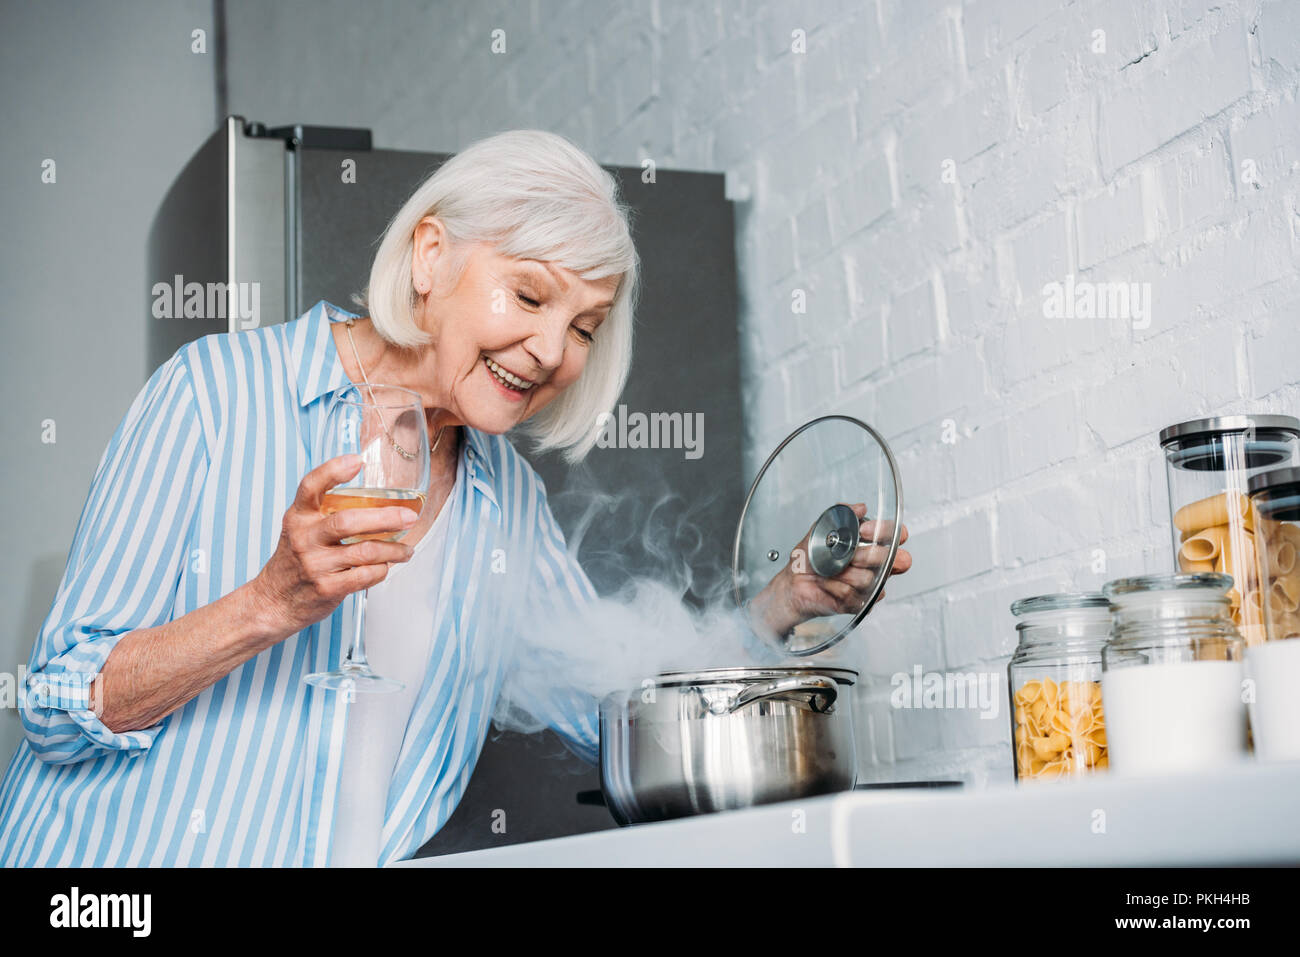 Old Lady Cooking Stock Photos & Old Lady Cooking Stock Images - Page ...